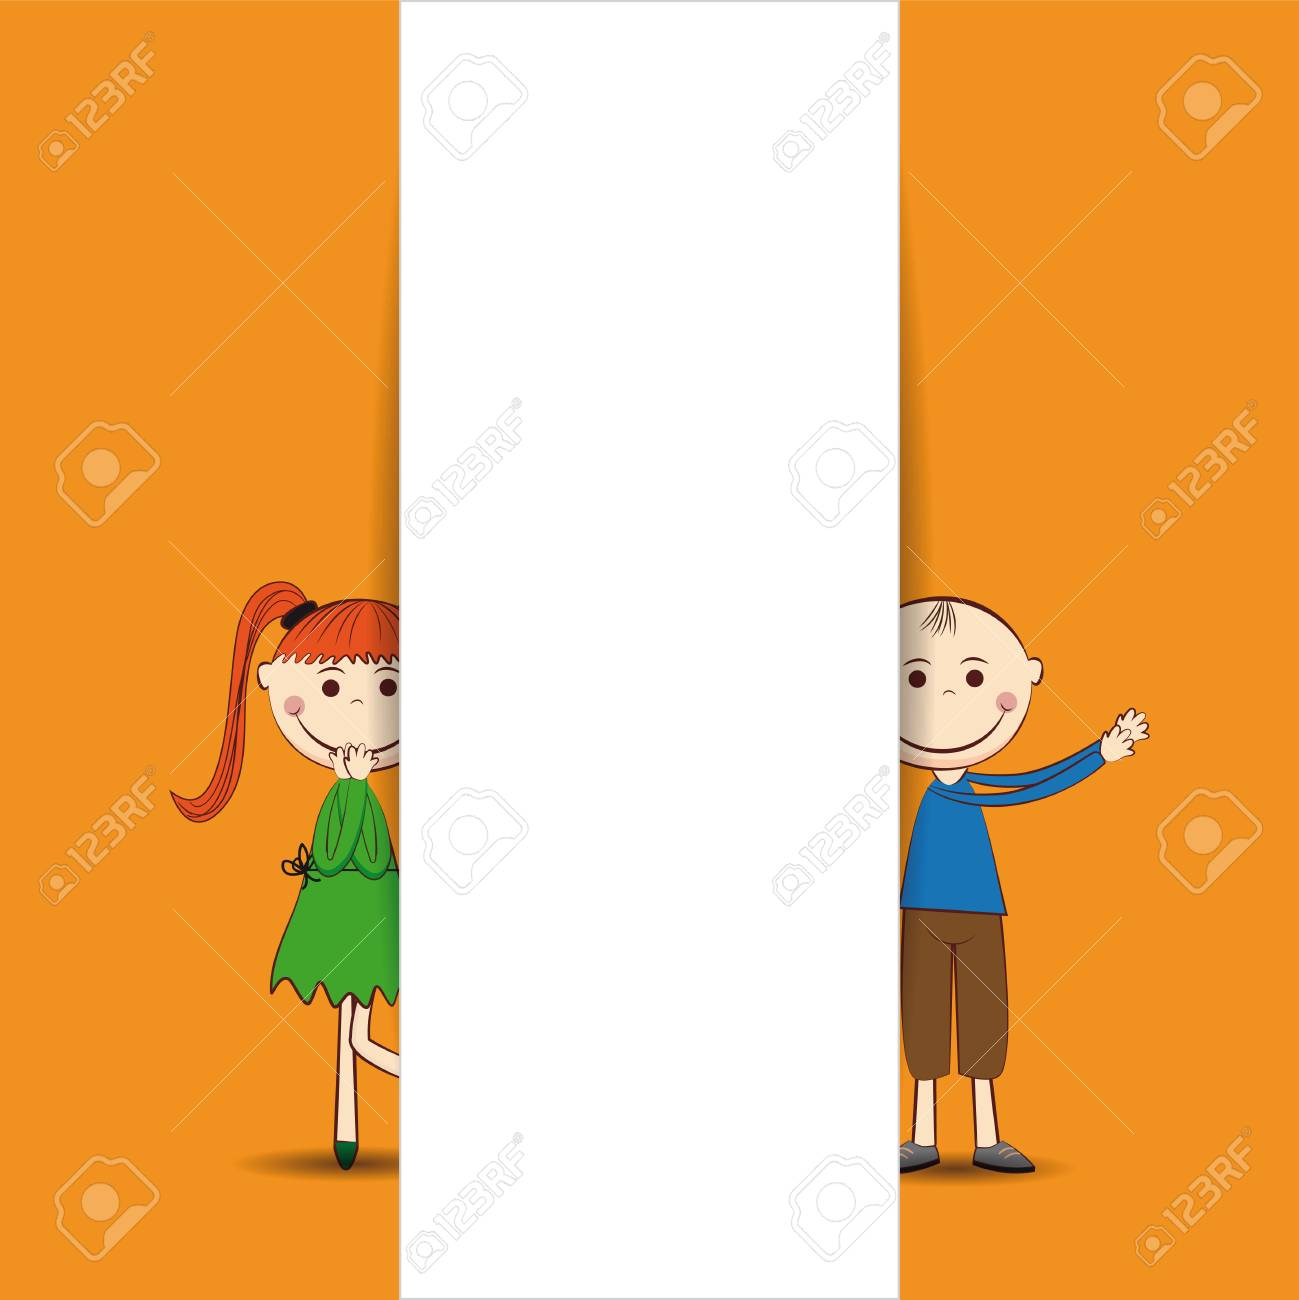 Small and smile boy and girl with banner Stock Vector - 24814455